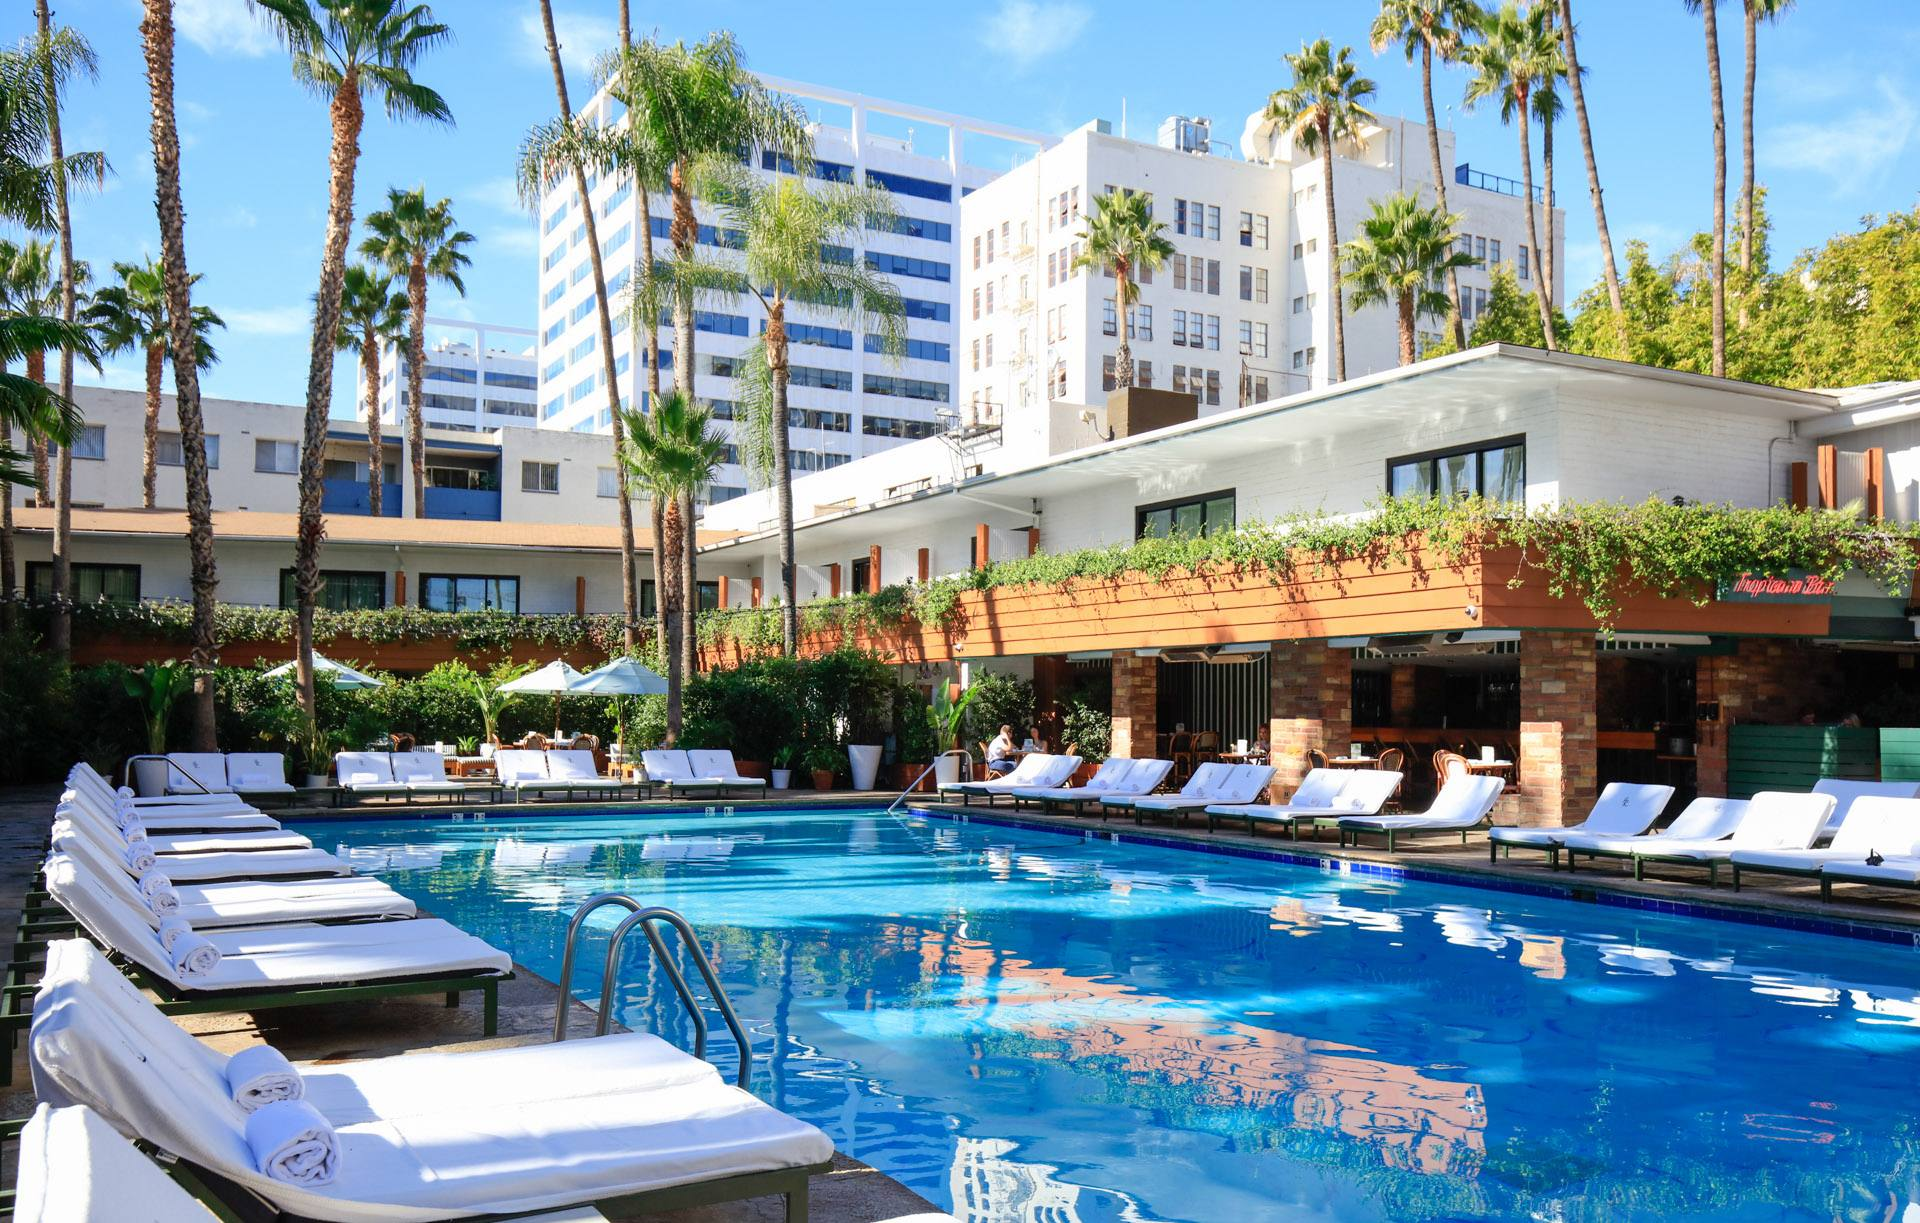 Tropicana Pool at the Hollywood Roosevelt Hotel   |  Photo:  Yuri Hasegawa